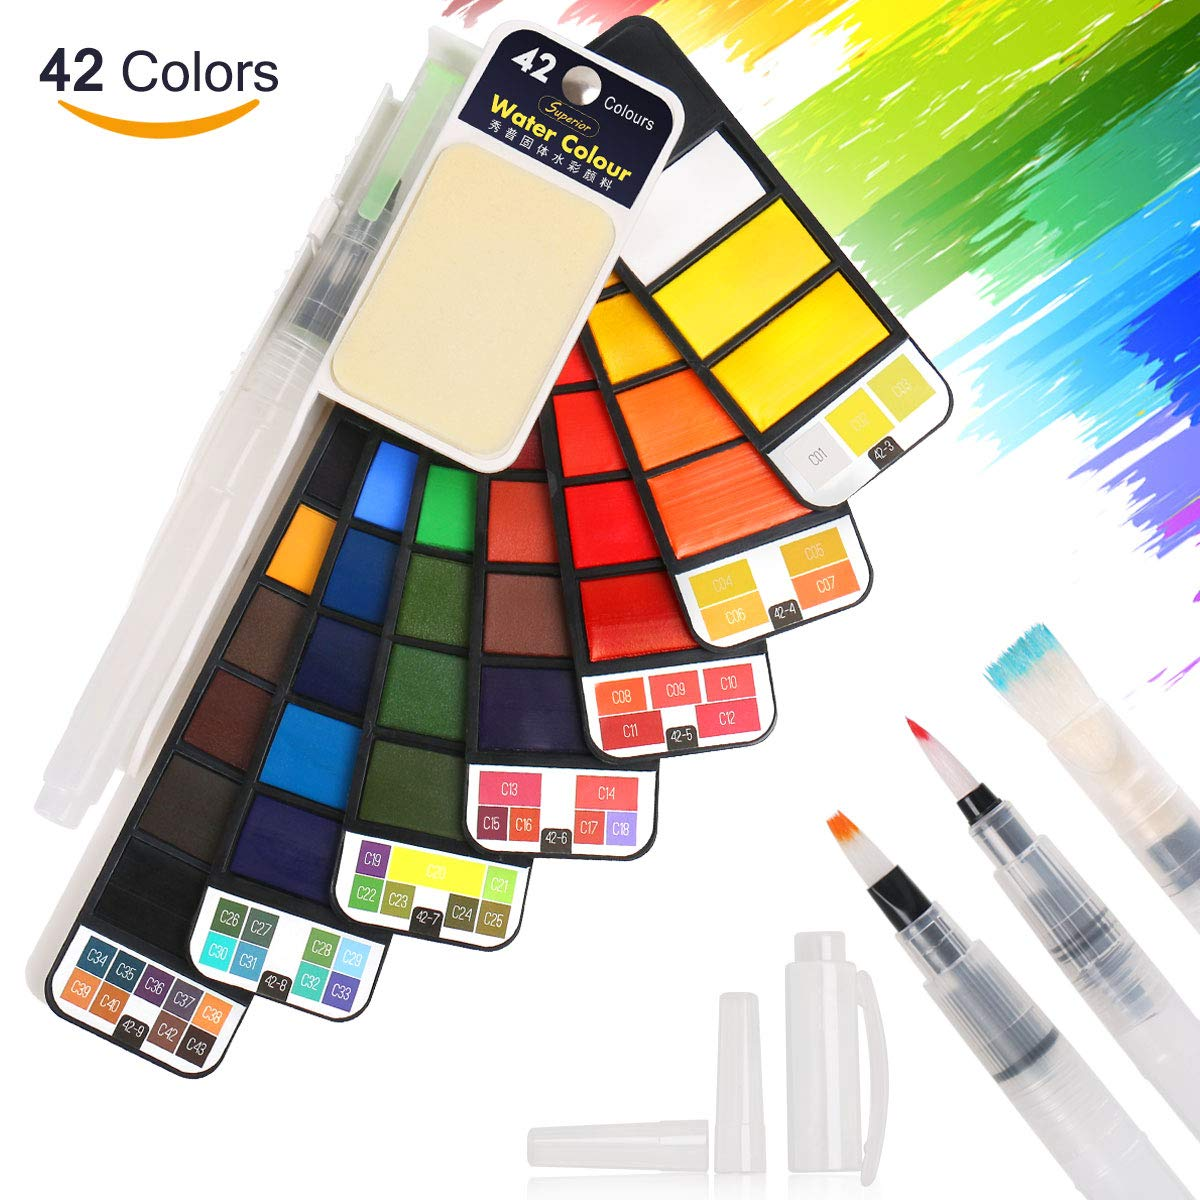 Watercolor Paint, BBLIKE 42 Assorted Colors Solid Travel Pocket Set with 4 Water Paint Brush Portable Watercolor Pigment for Artist Supplies Students Draw Painting Outdoor Gift On The Go (42 Colors)